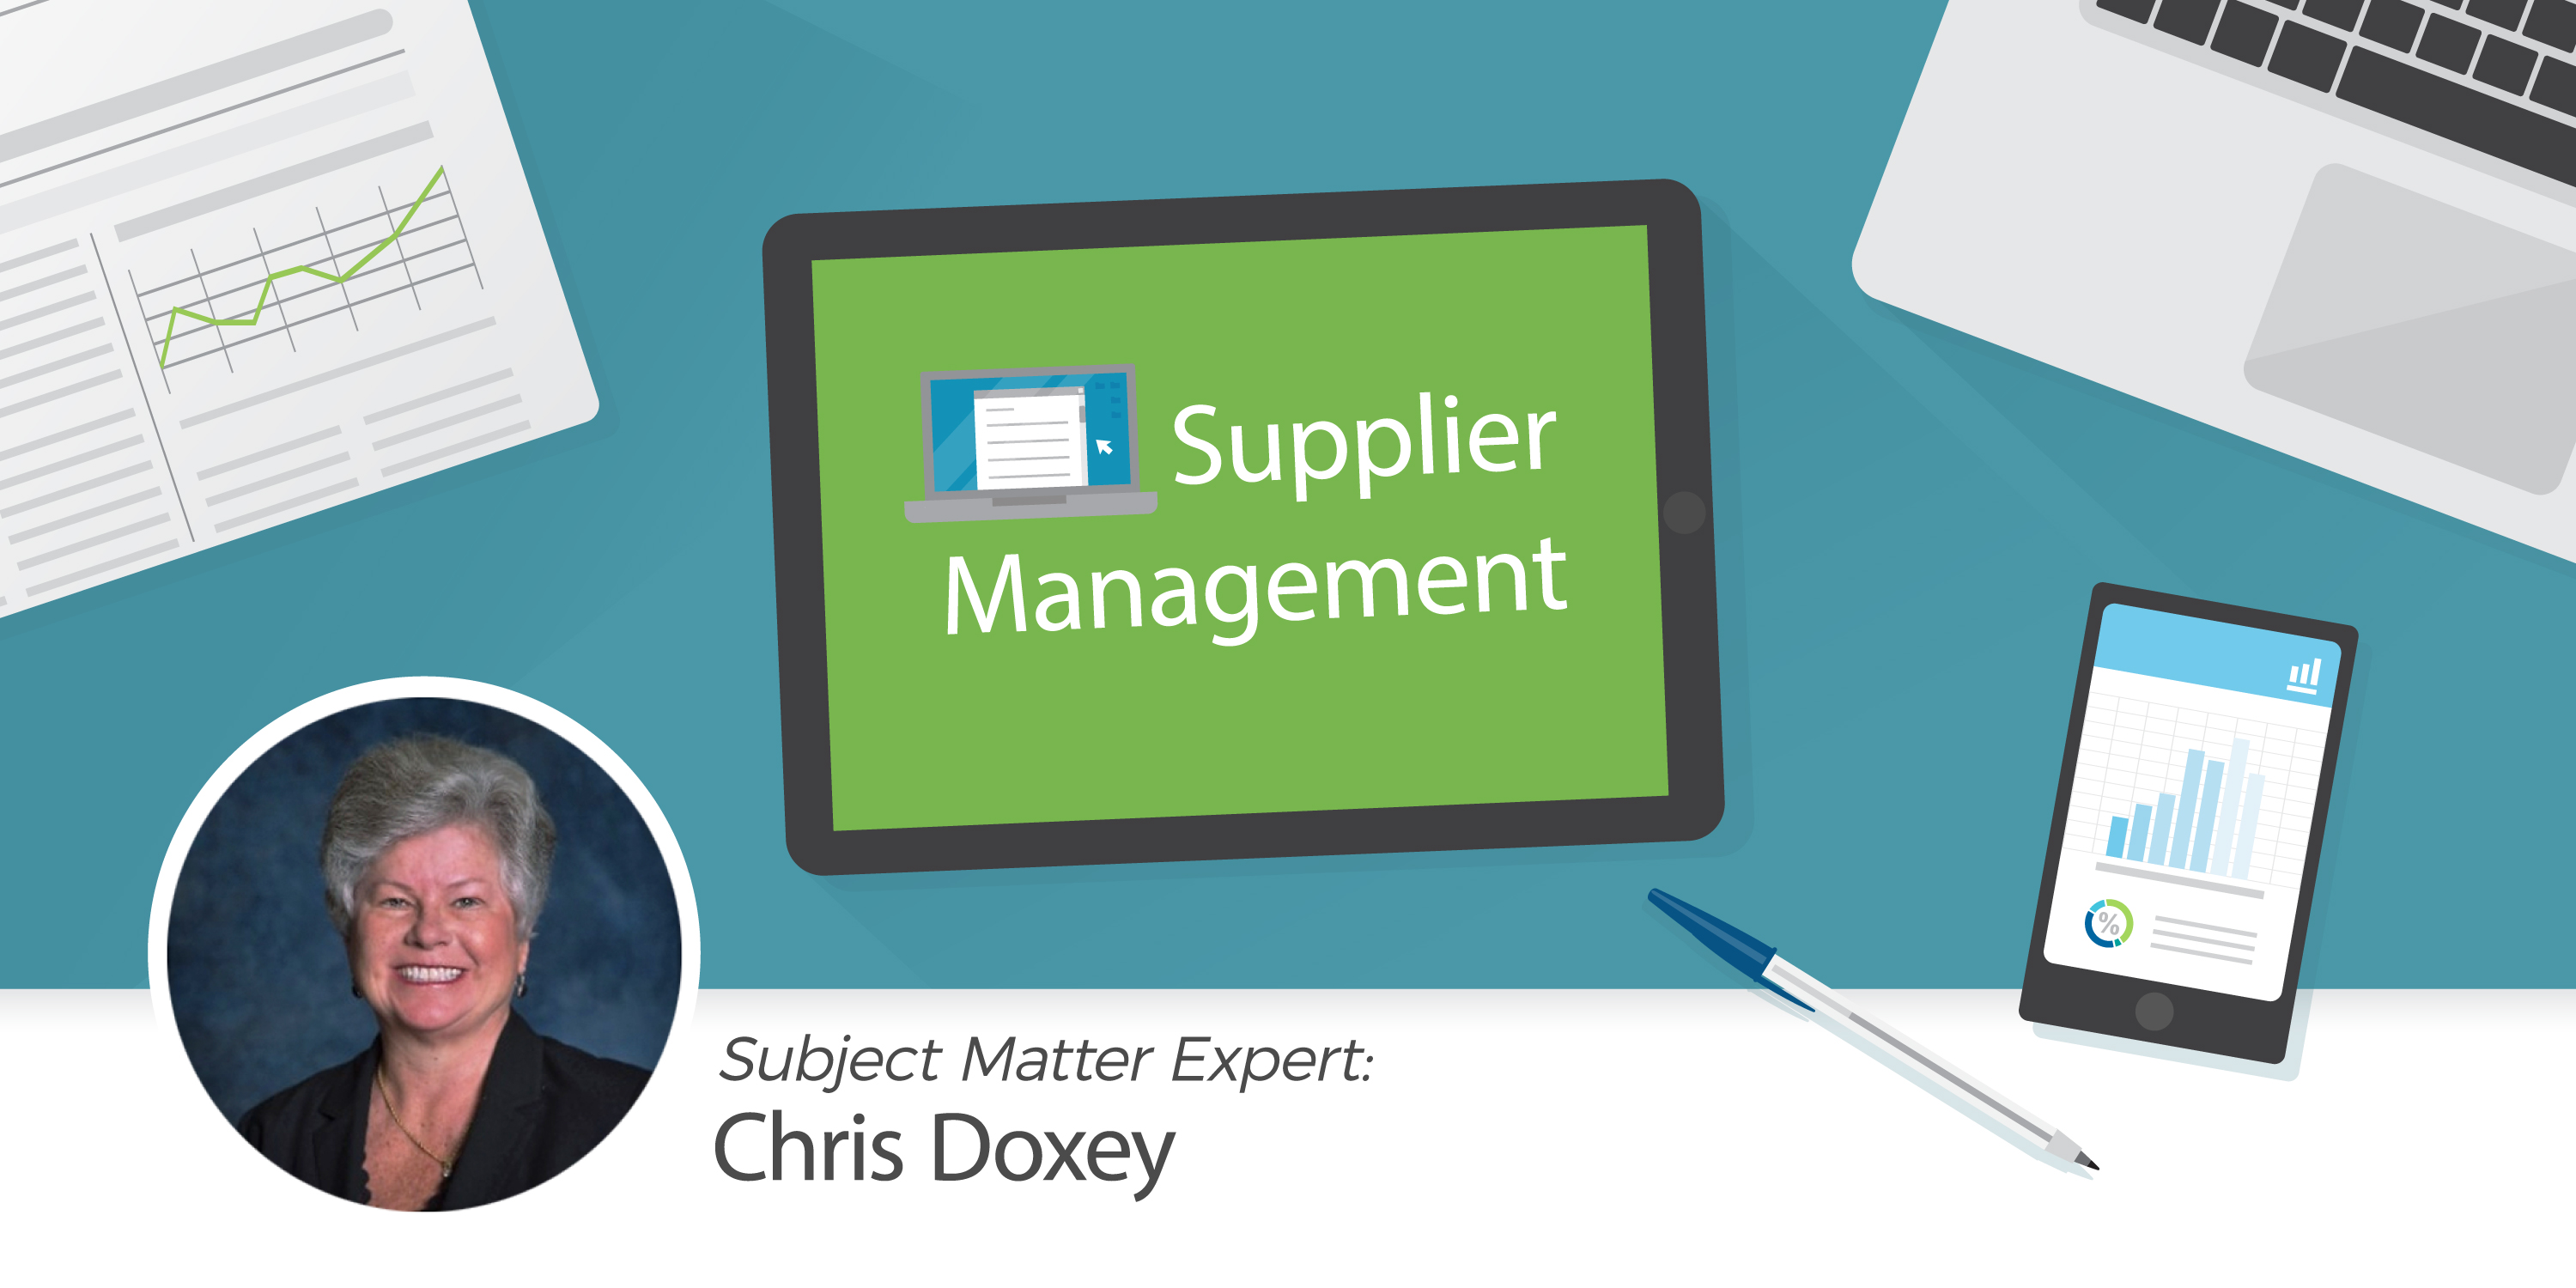 Chris Doxey presents tips for standardizing your supplier master file coding